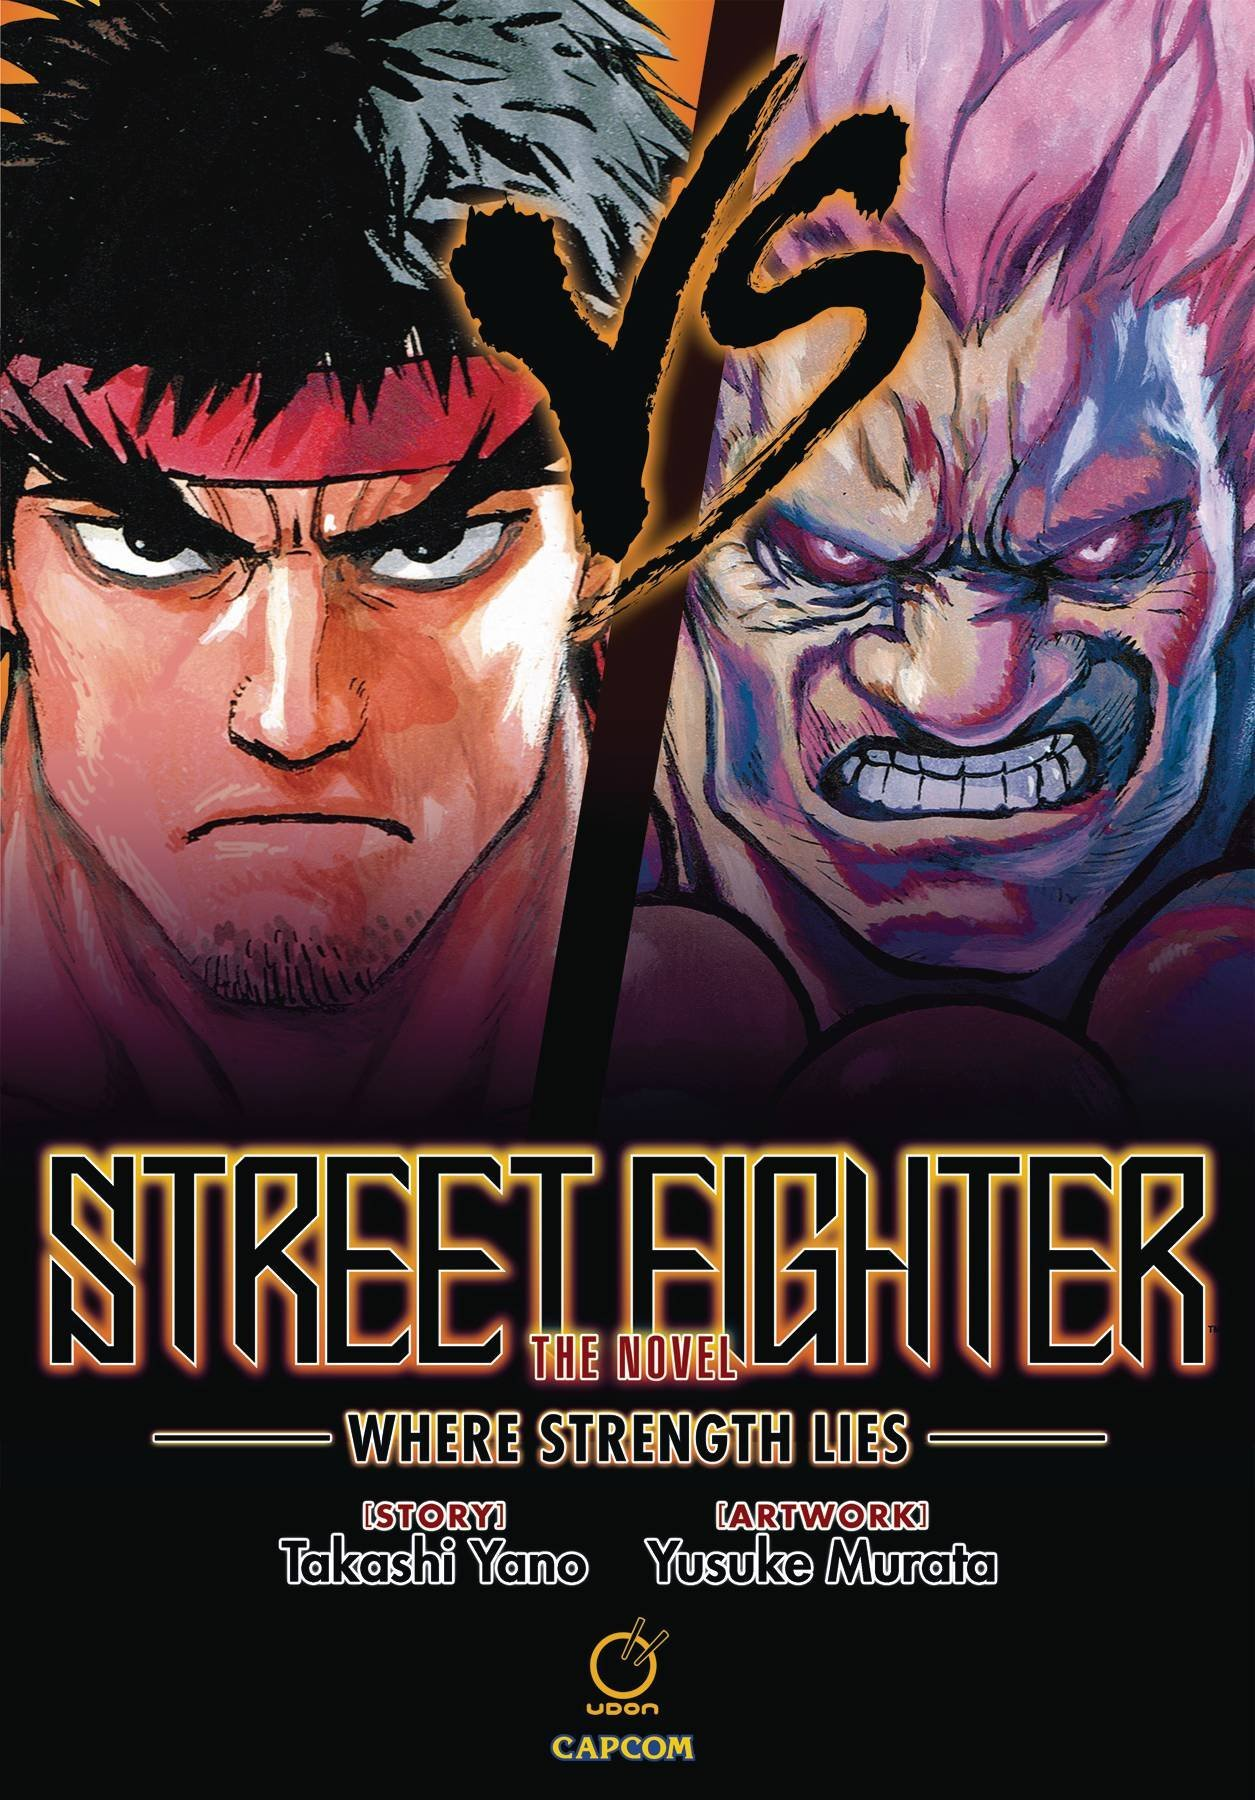 Street Fighter: The Novel - Where Strength Lies